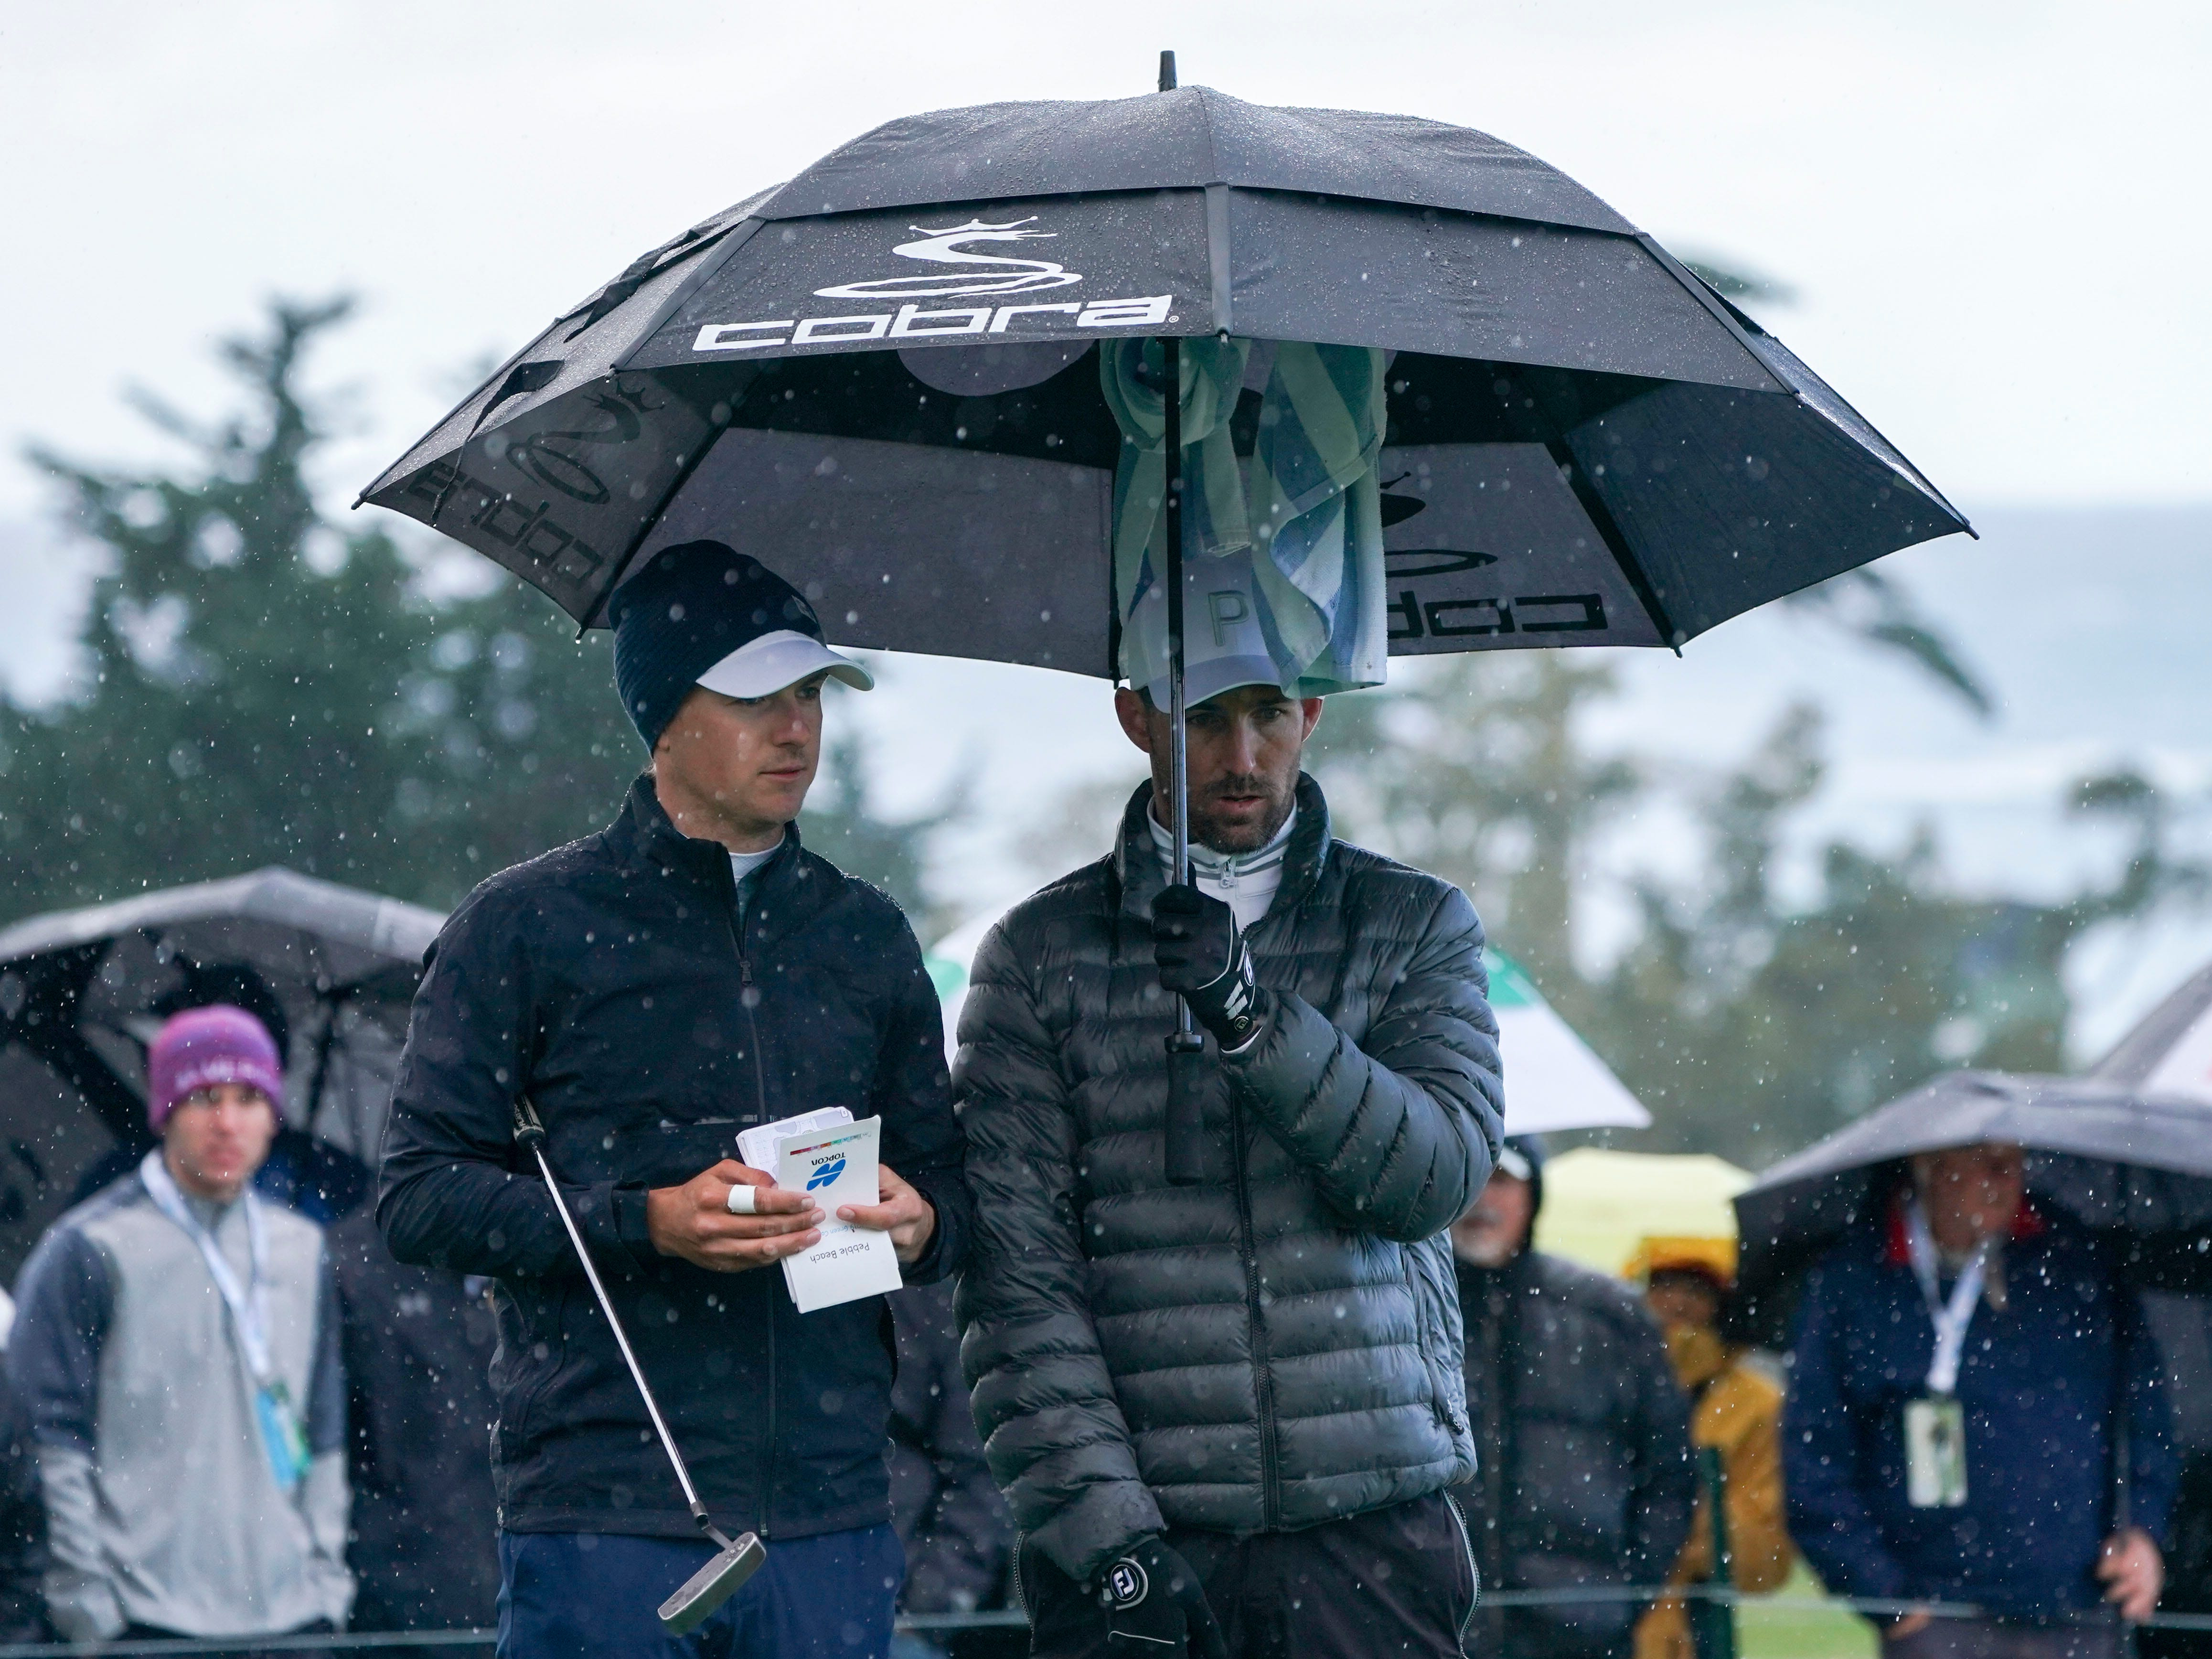 Jordan Spieth (left) and Jake Owen (right) stand under an umbrella on the second hole during the final round of the AT&T Pebble Beach Pro-Am.